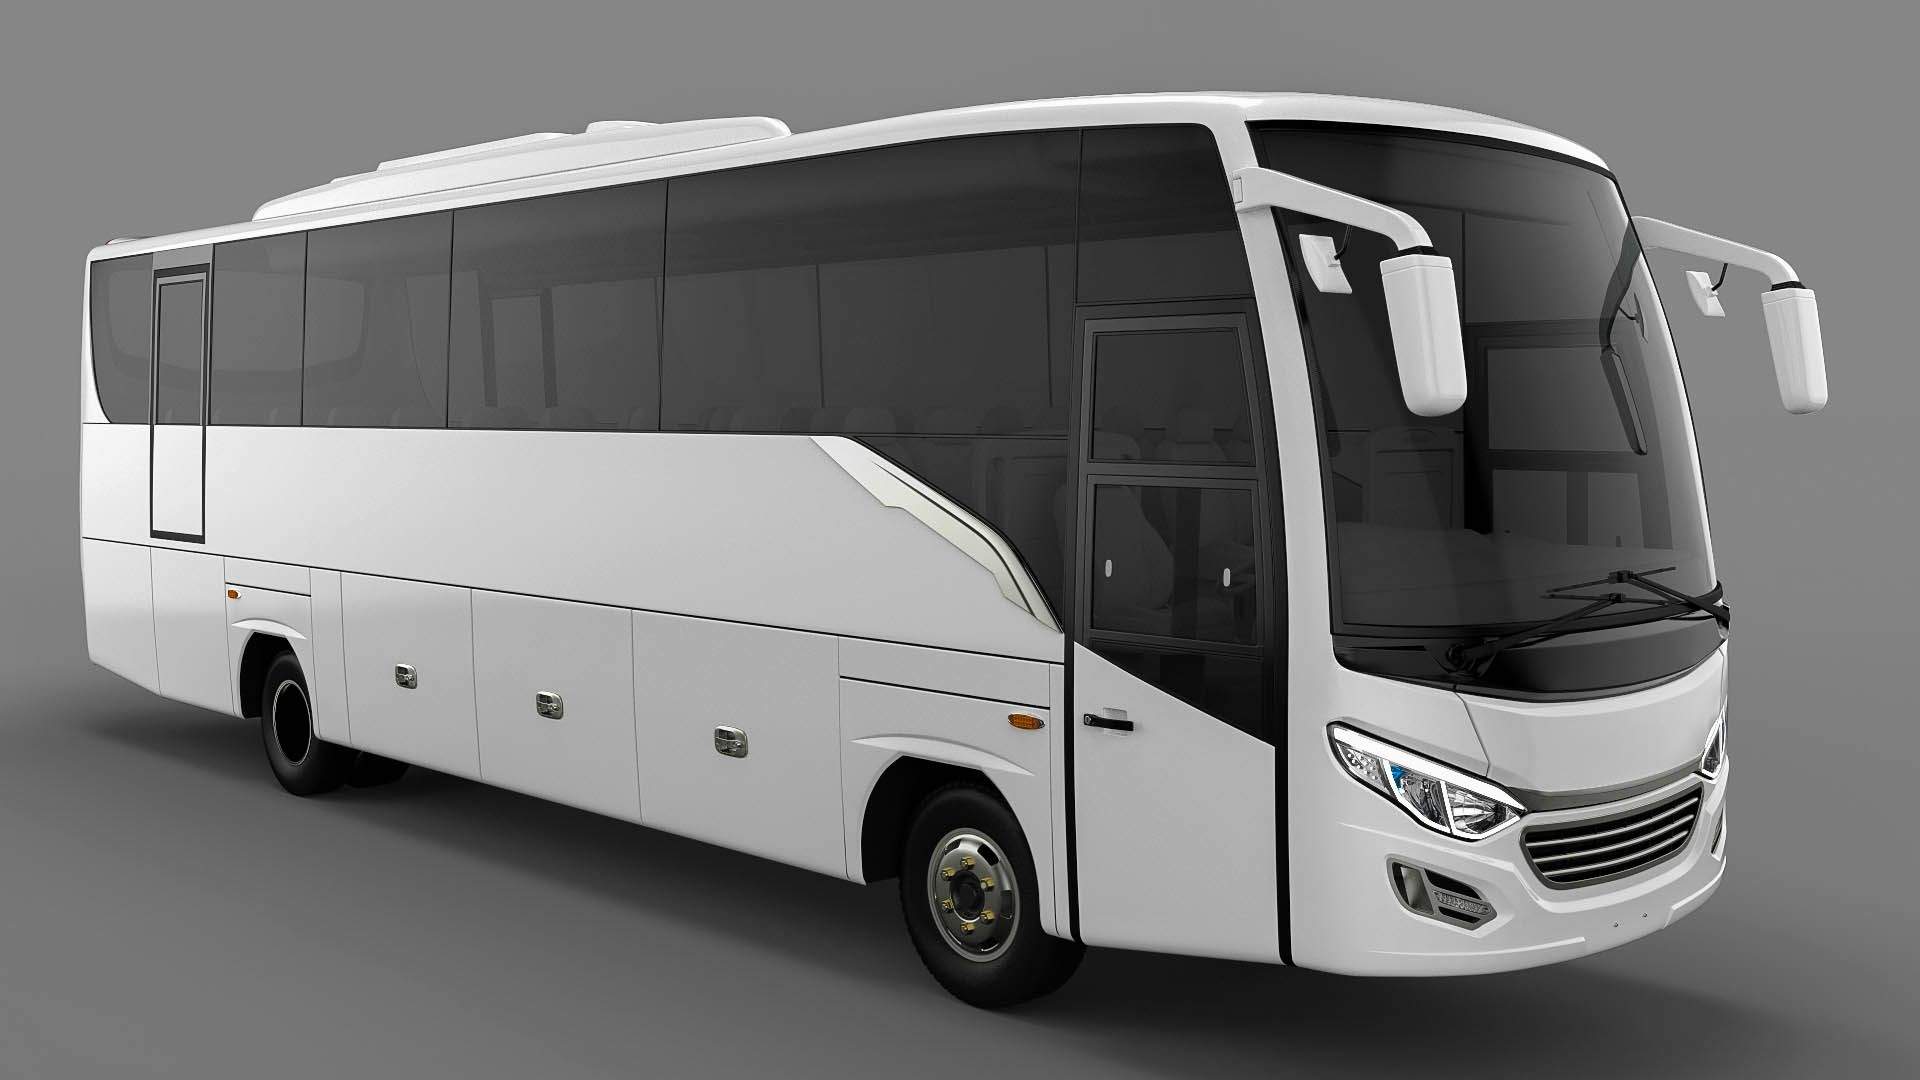 The New Model Medium Bus Design on PT Adi Putro with